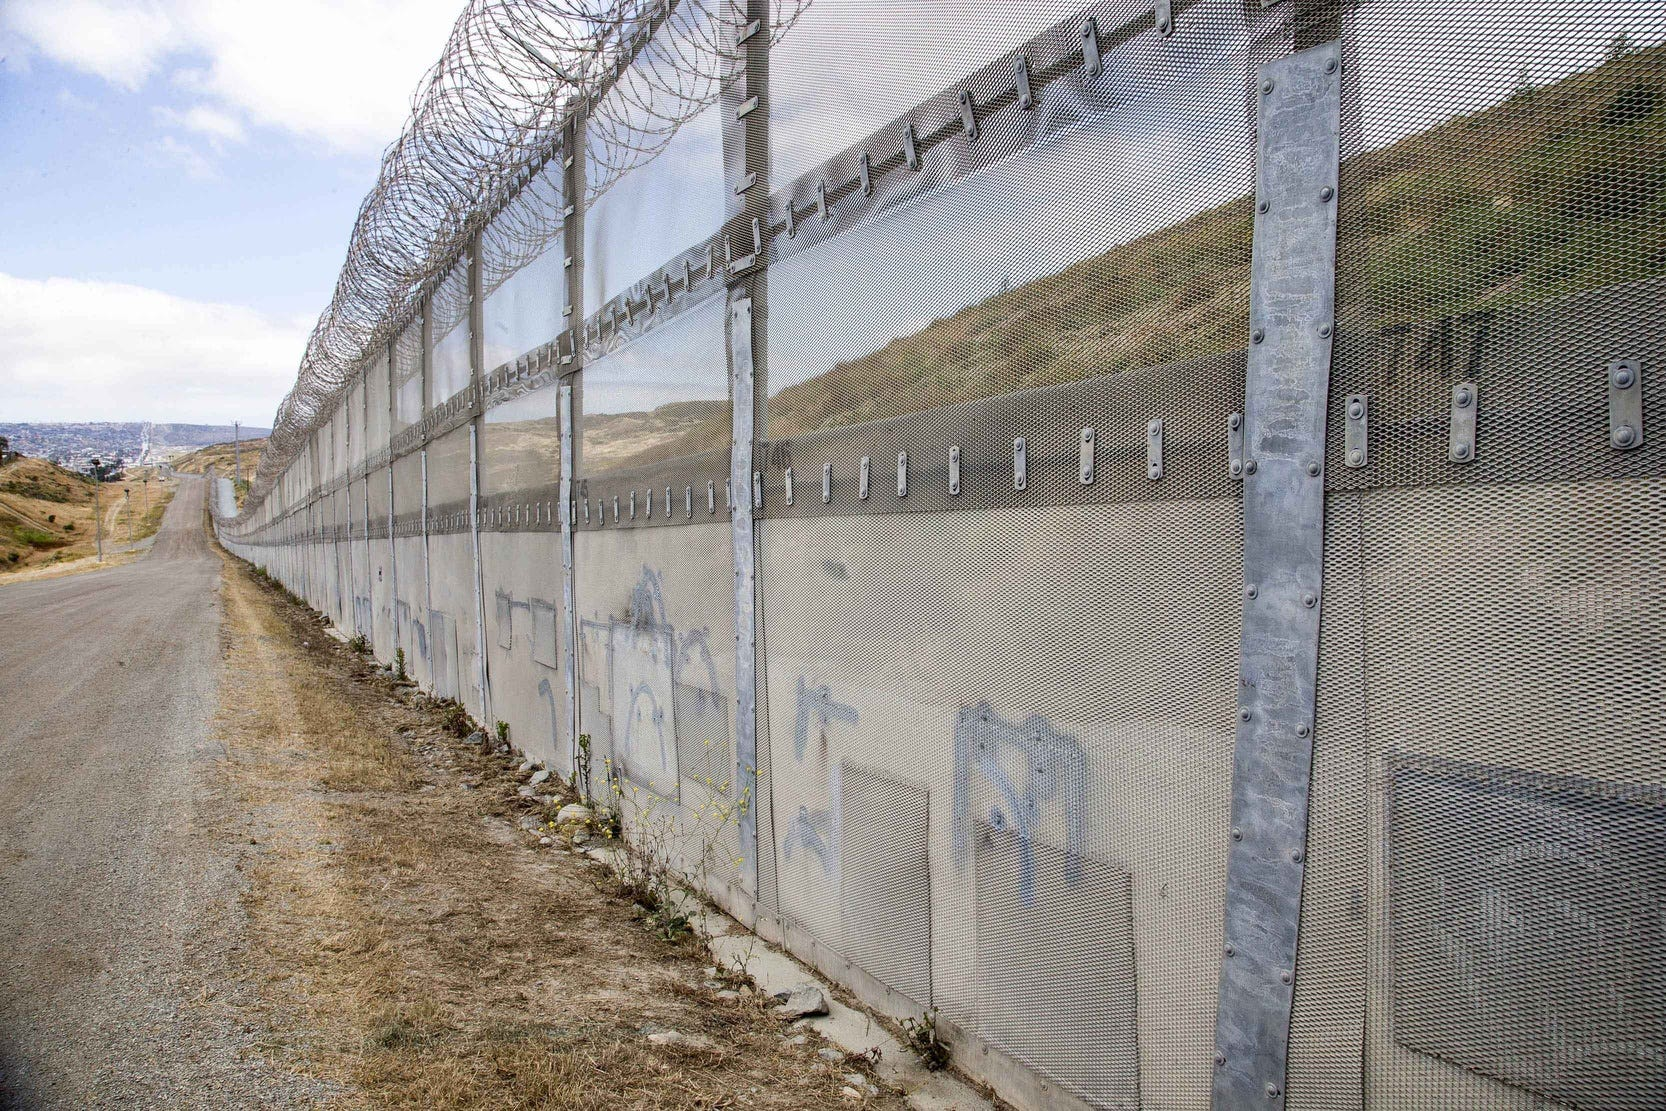 THE WALL How long is the USMexico border